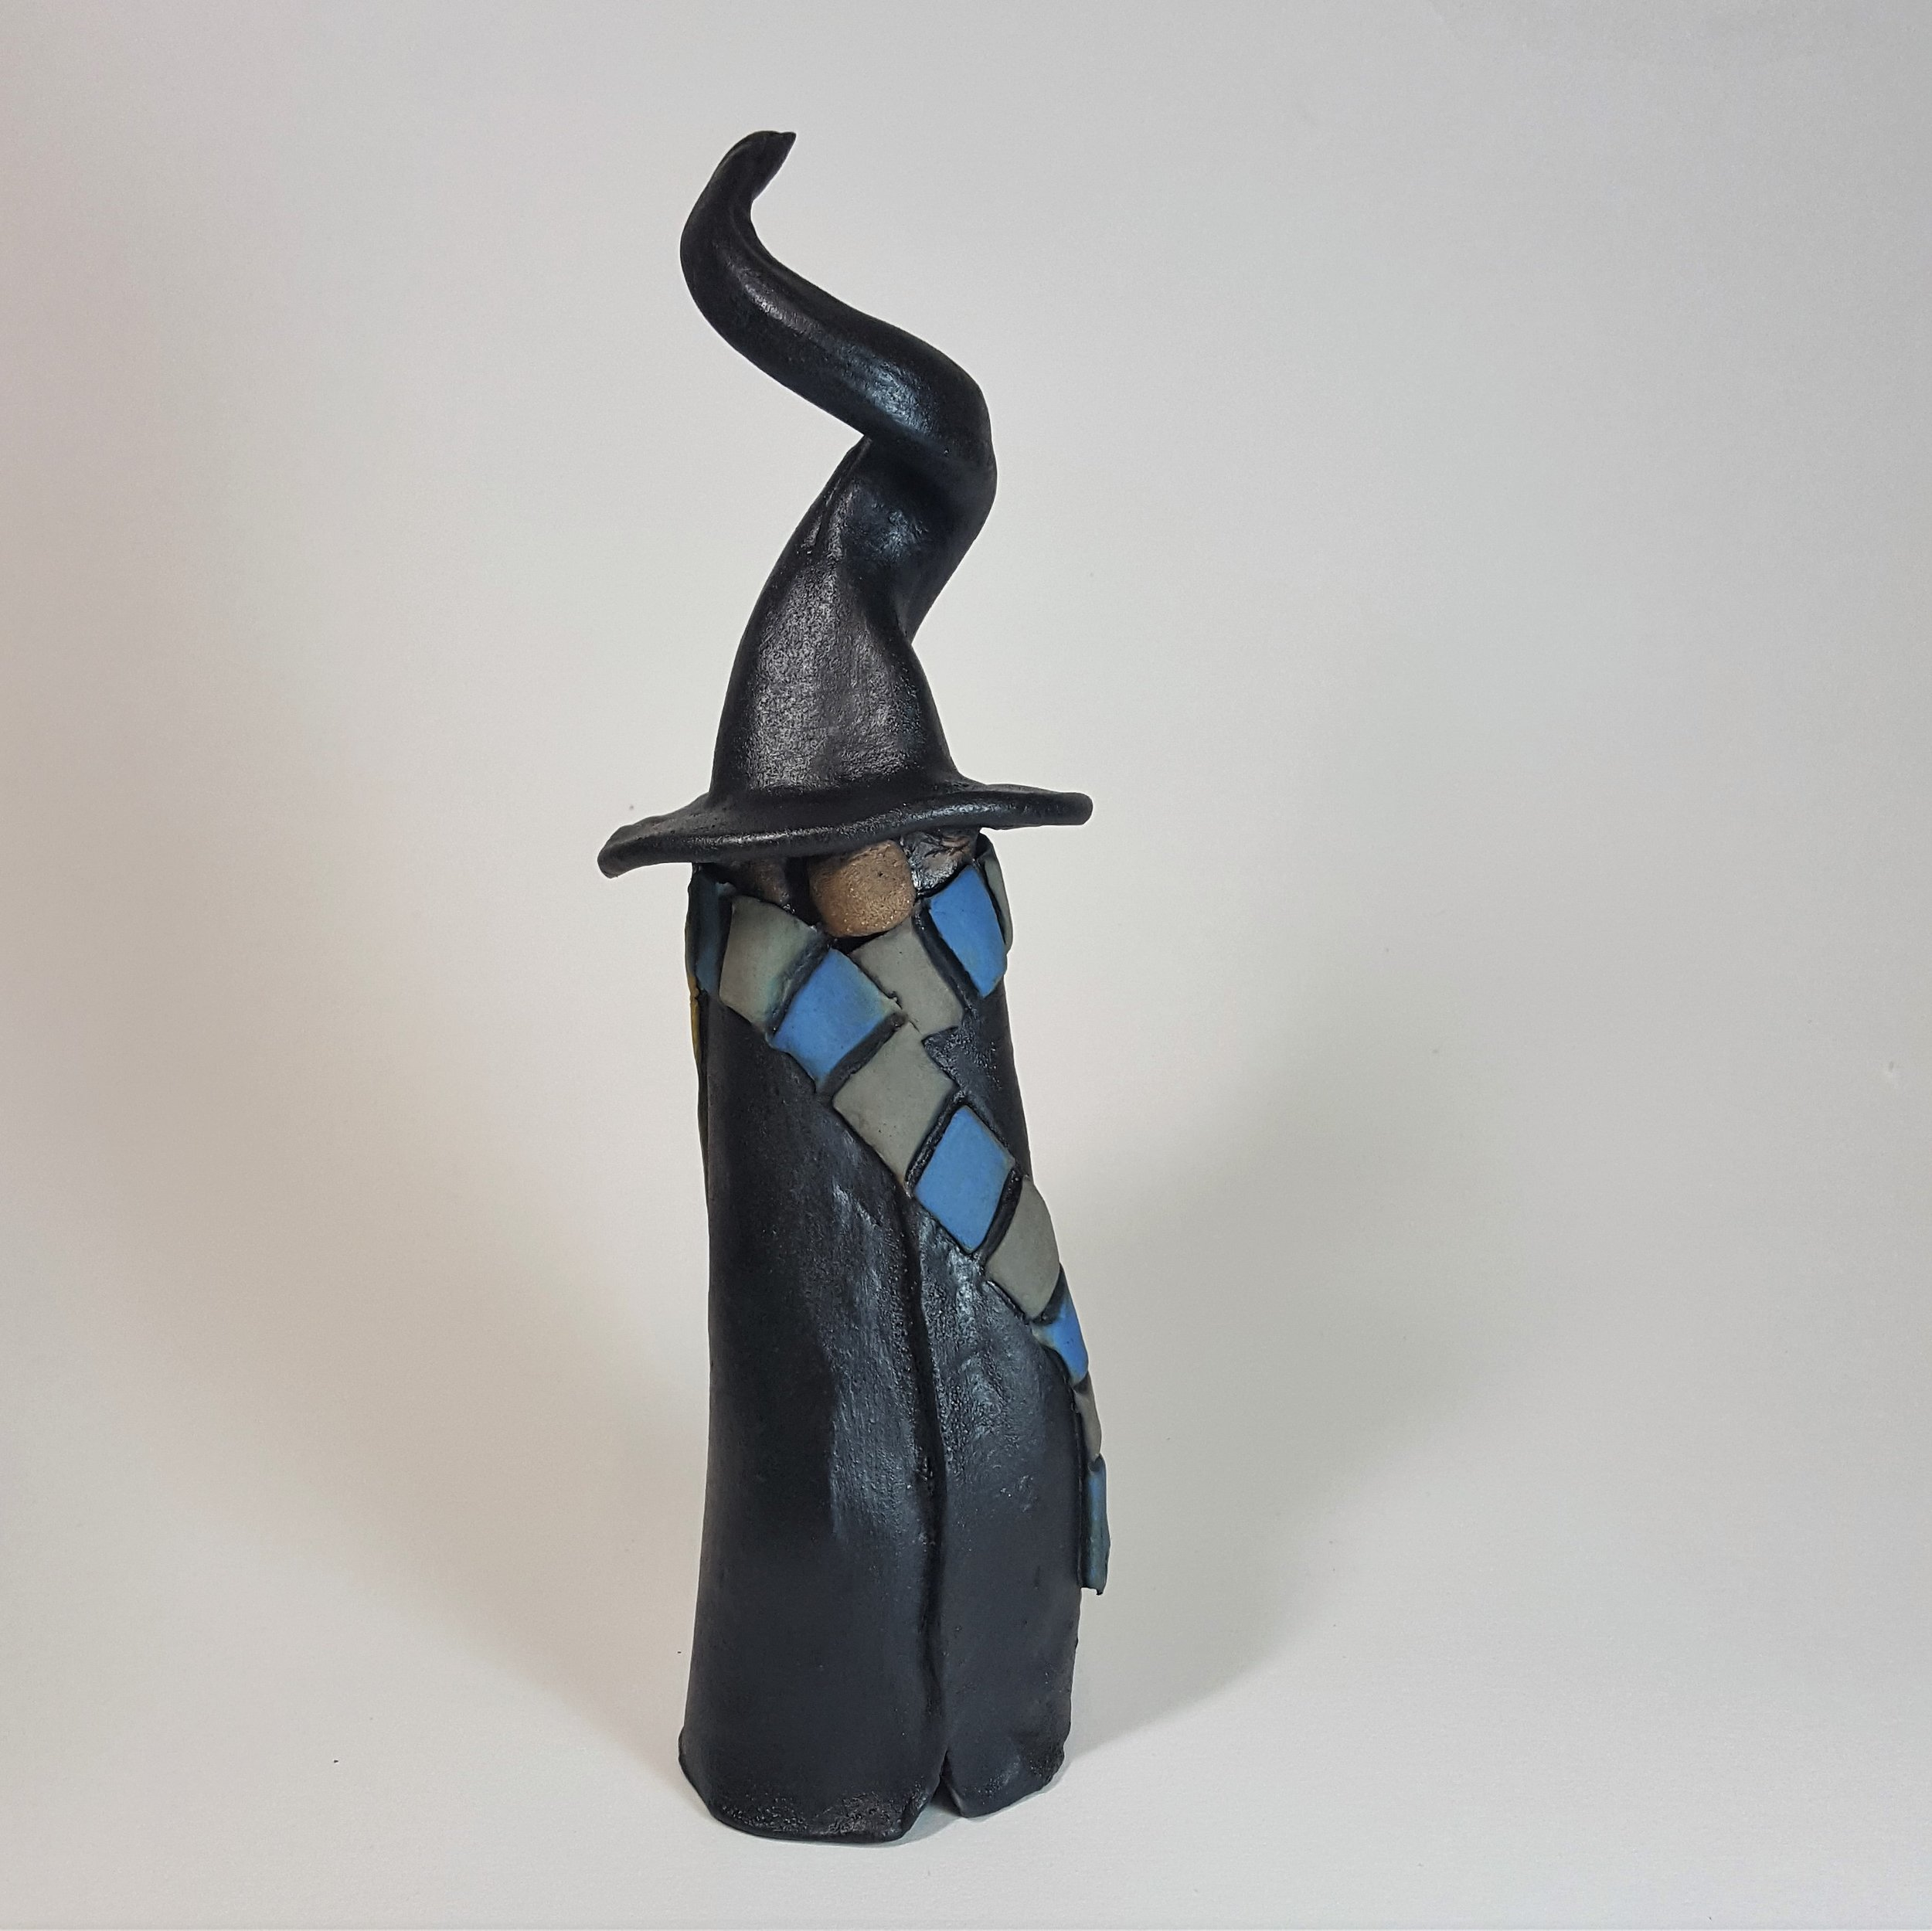 9.25 Inch Tall Witch/Wizard with Long Blonde Hair - $45